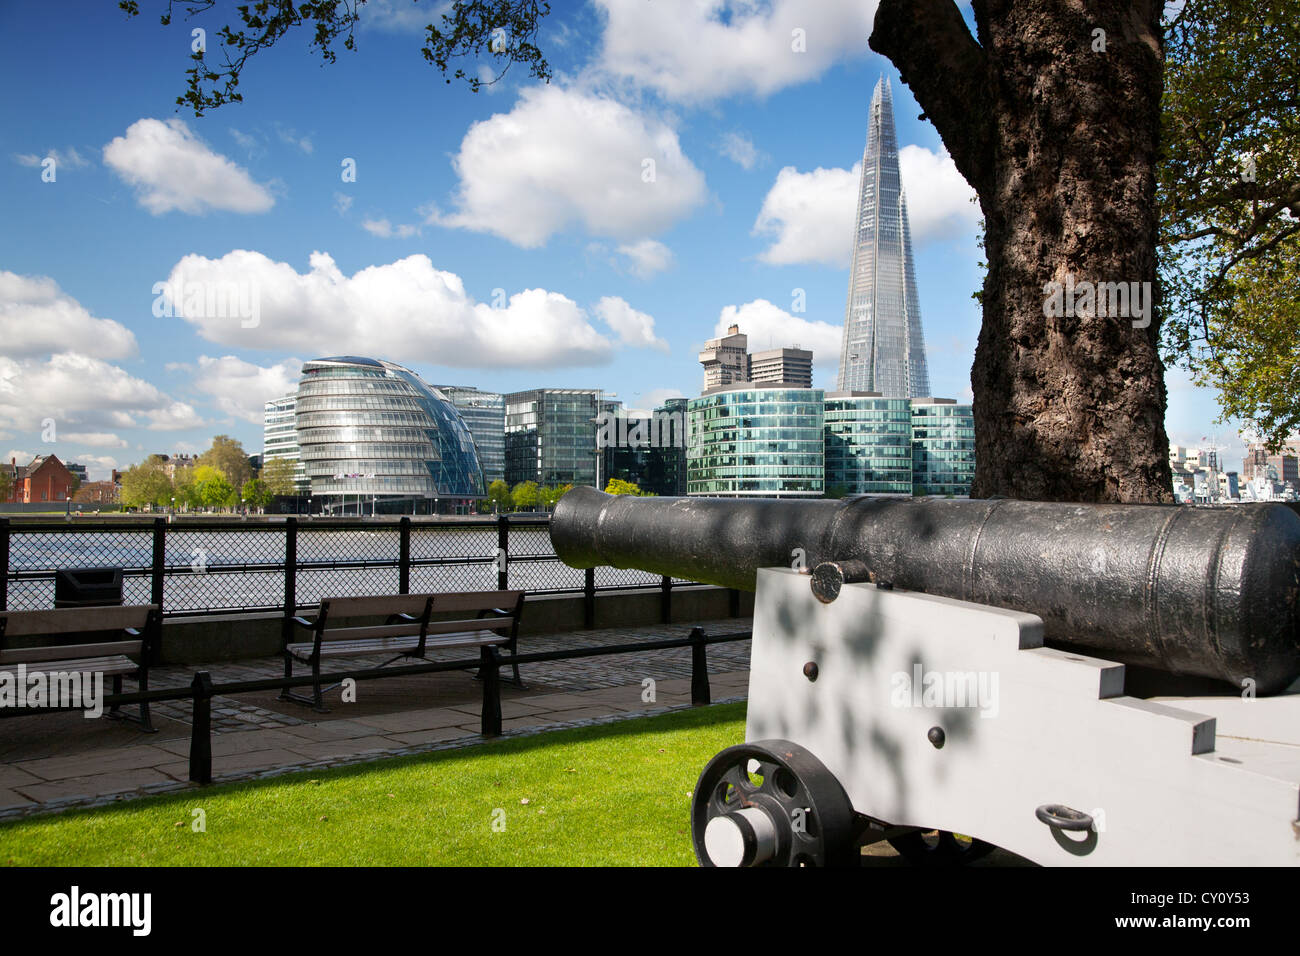 England. London. Cannon by the River Thames. City Hall and the Shard building in the background. - Stock Image